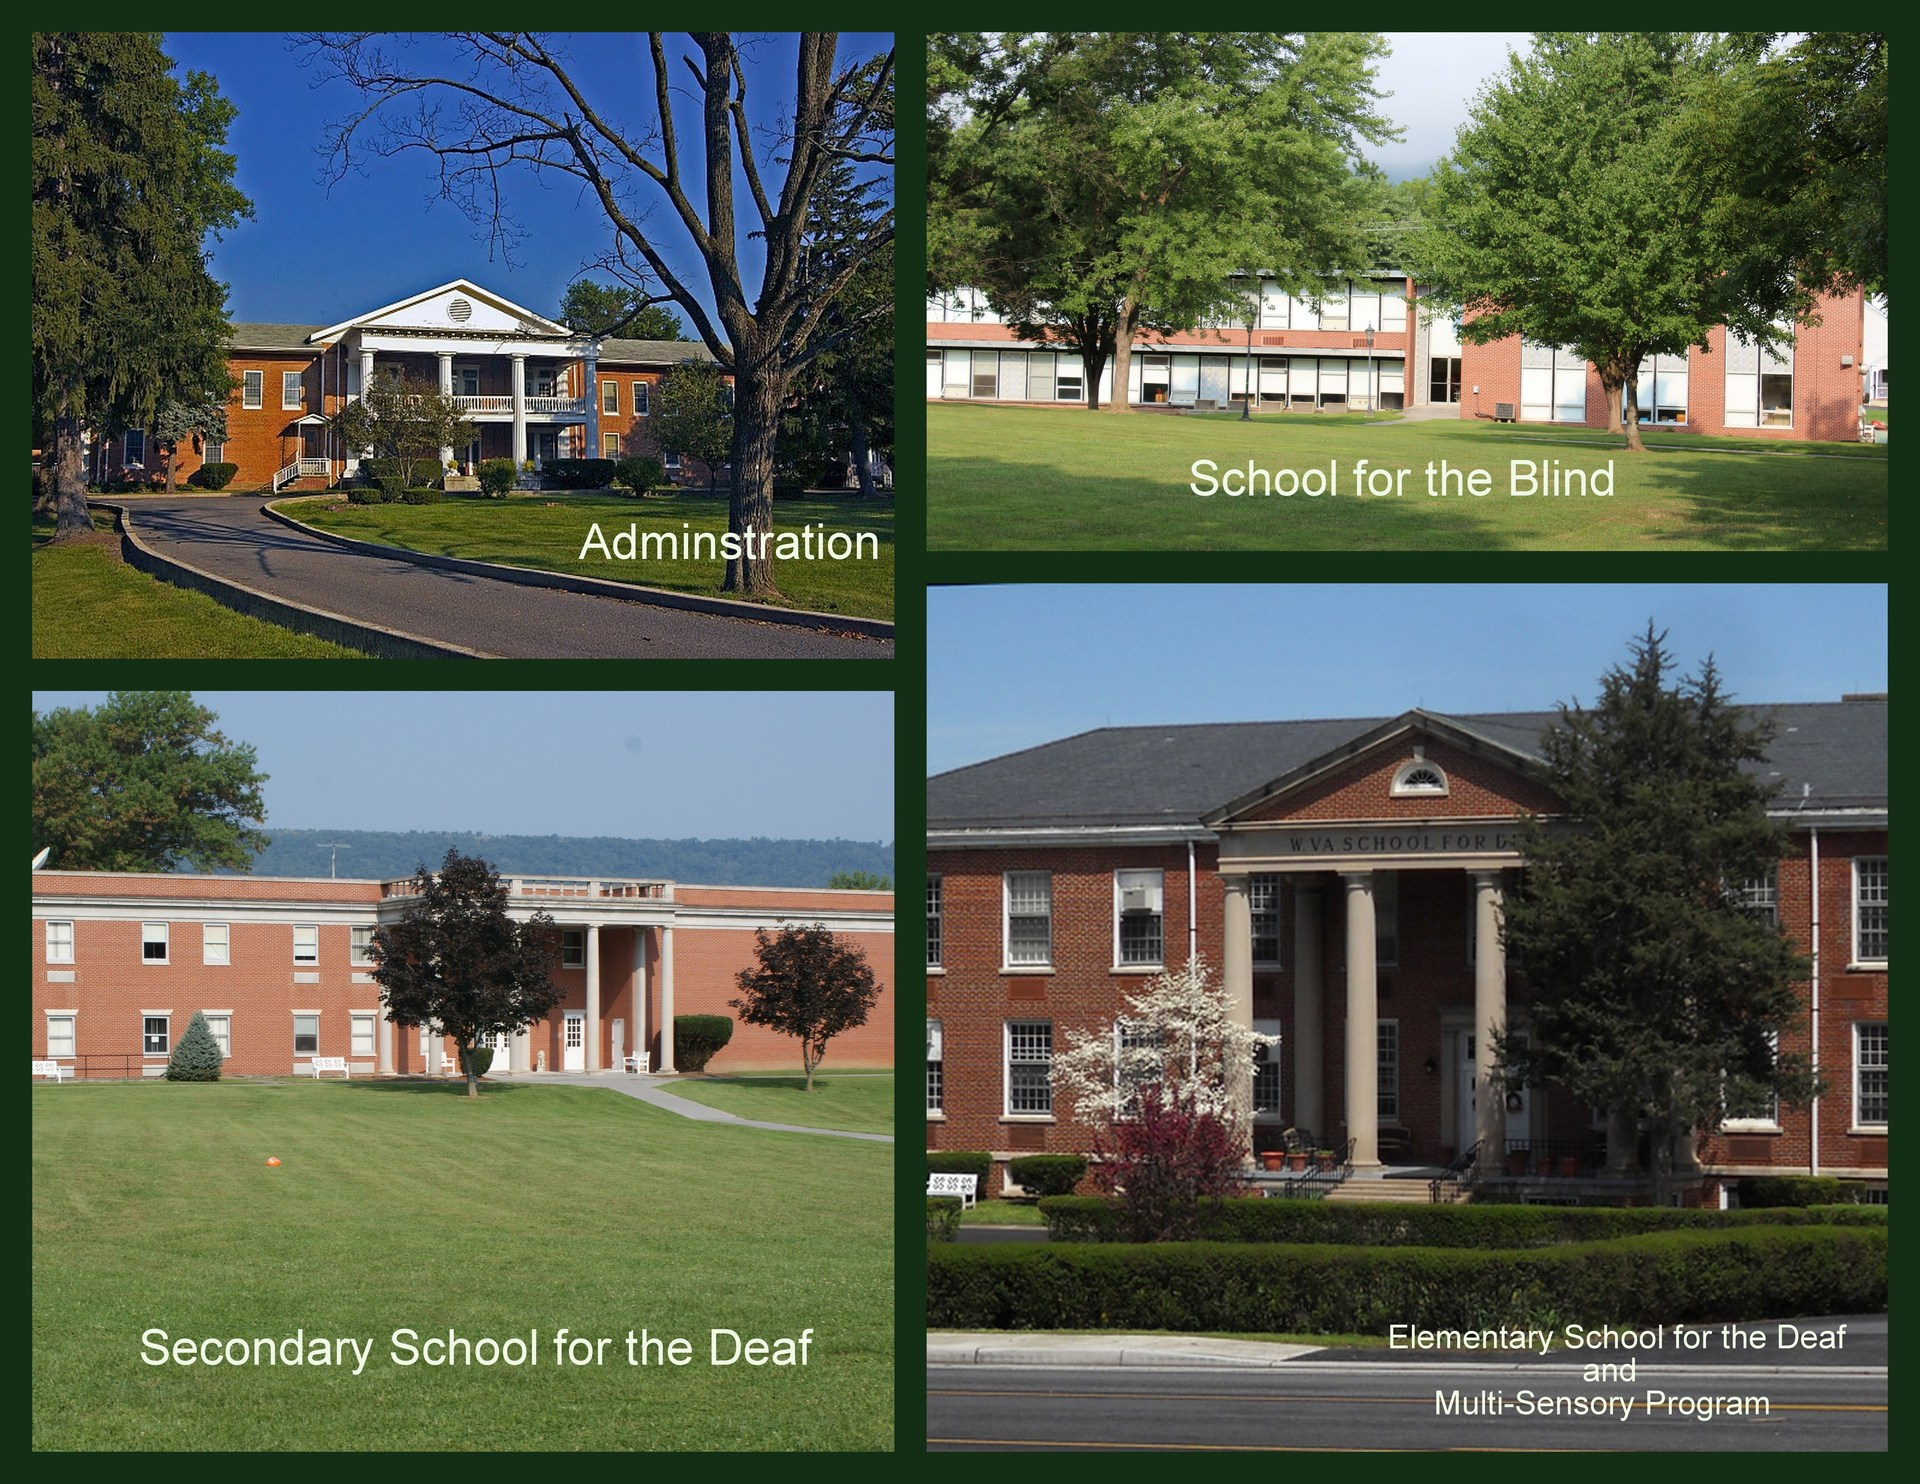 Collage showing WVSDB buildings (Clockwise beginning in top left): Administration, School for the Blind, School for the Deaf, Previous Elementary School for the Deaf and Multi-Sensory Program